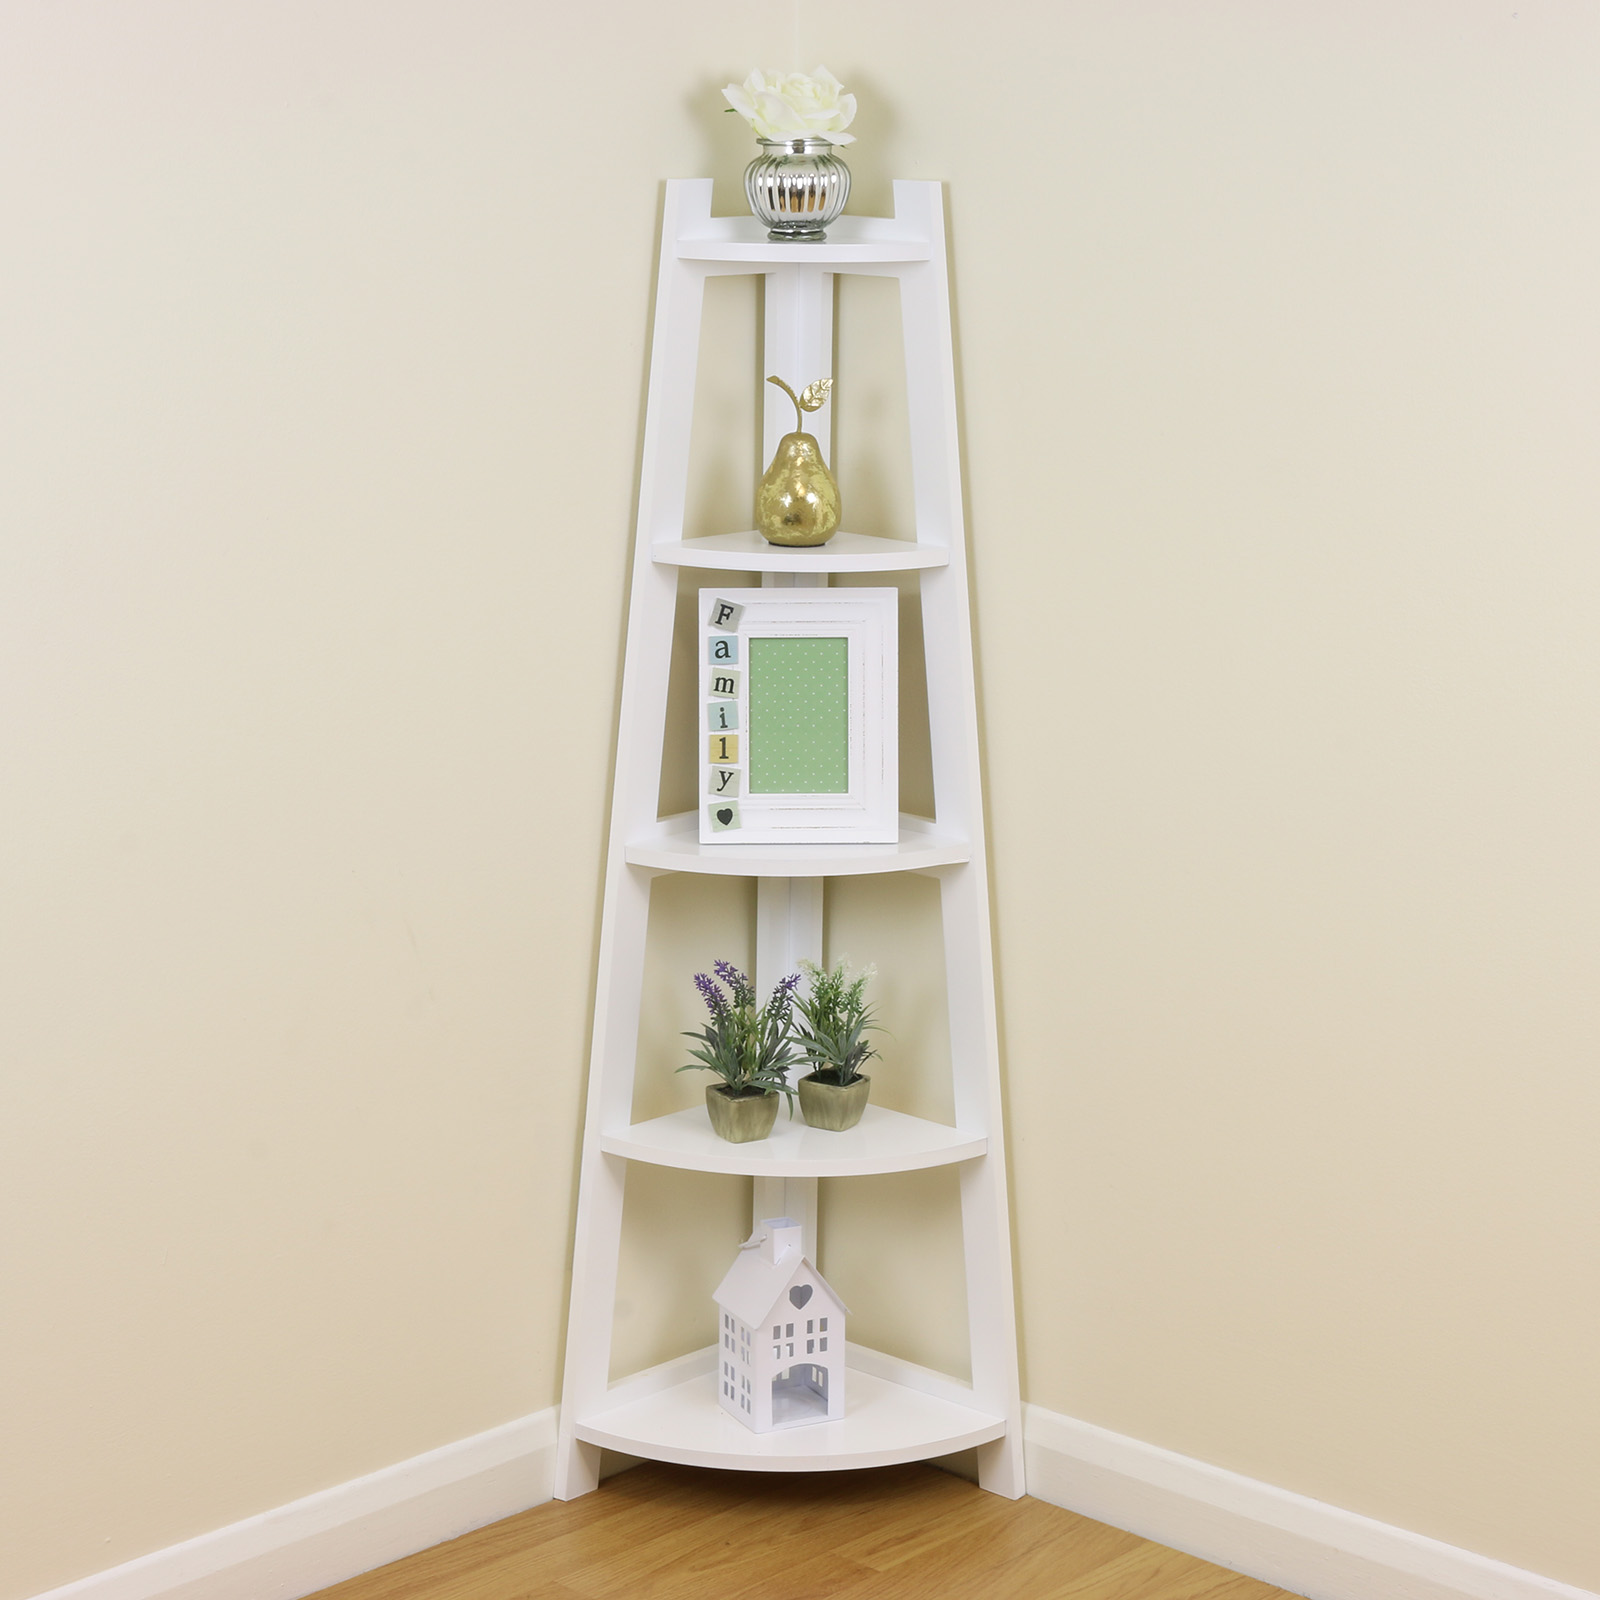 How to utilize space efficently with a corner shelf unit